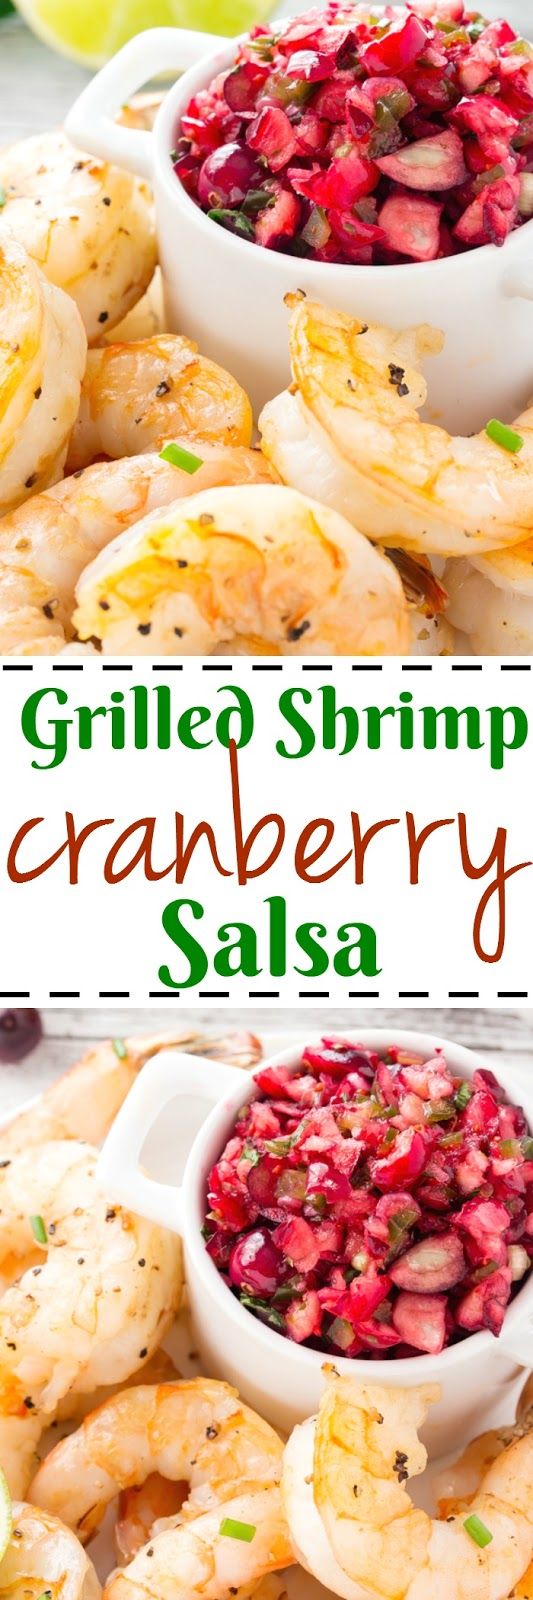 Cranberry Salsa with Grilled Shrimp